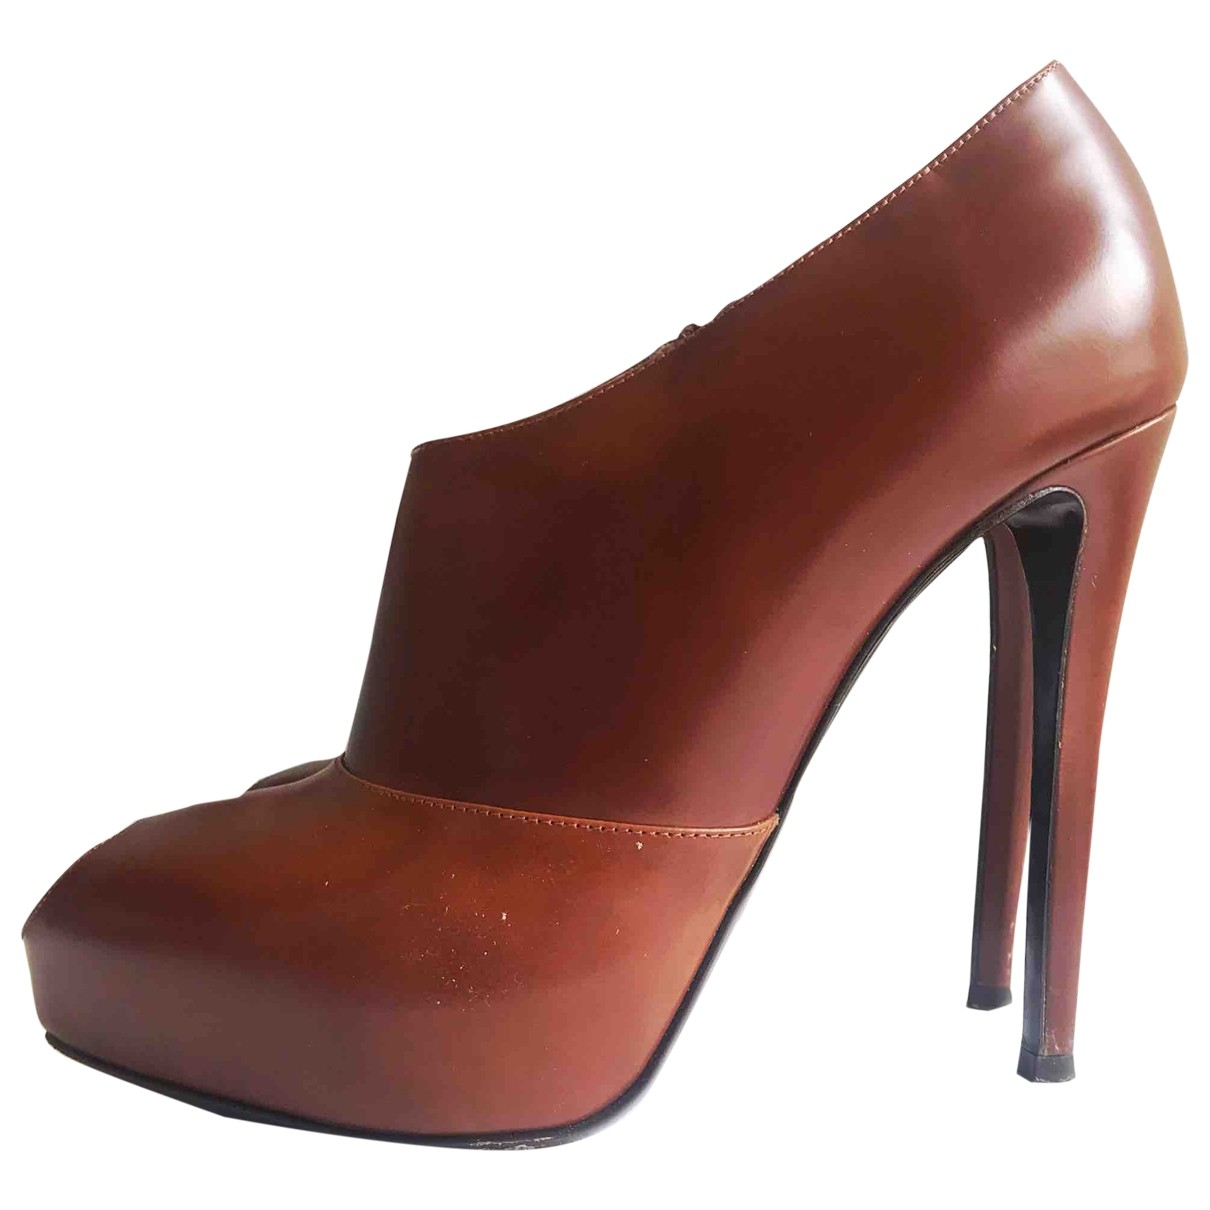 Emporio Armani \N Brown Leather Ankle boots for Women 38.5 EU